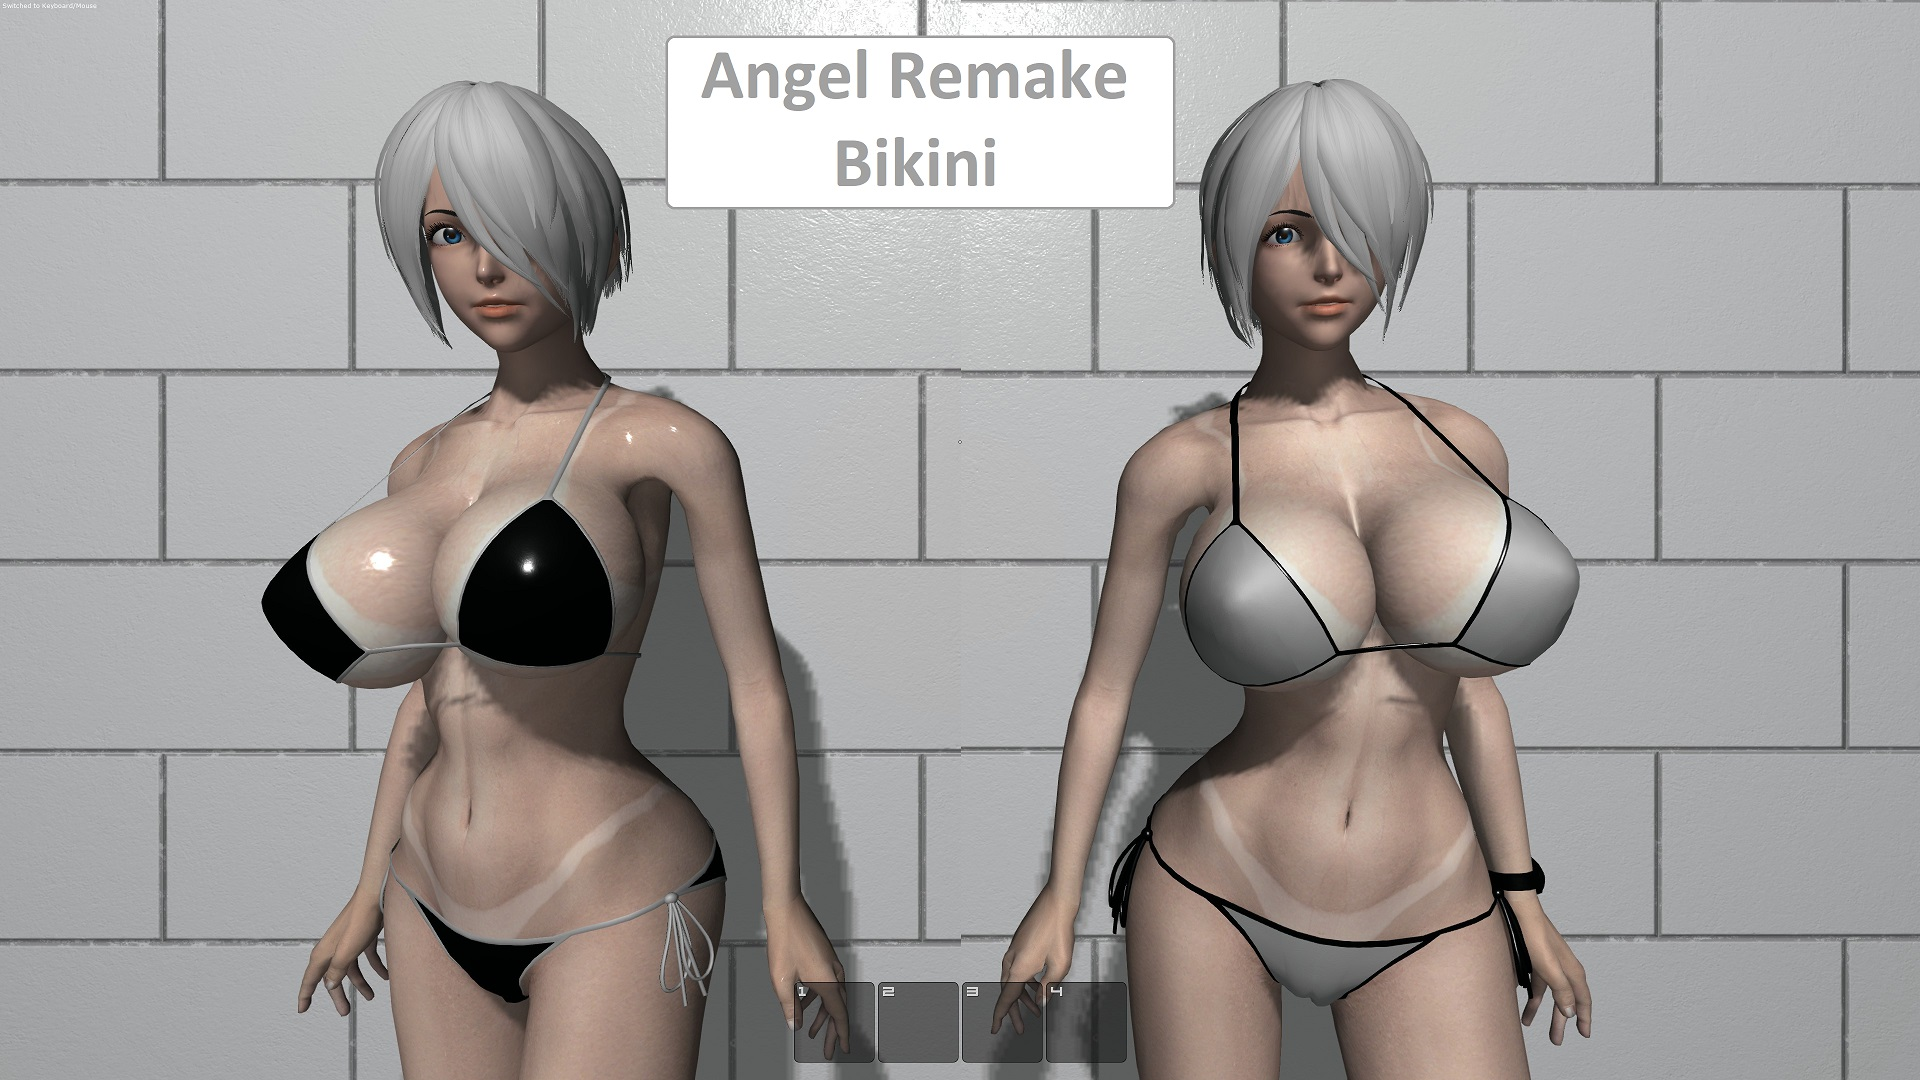 Angel Remake Bikini